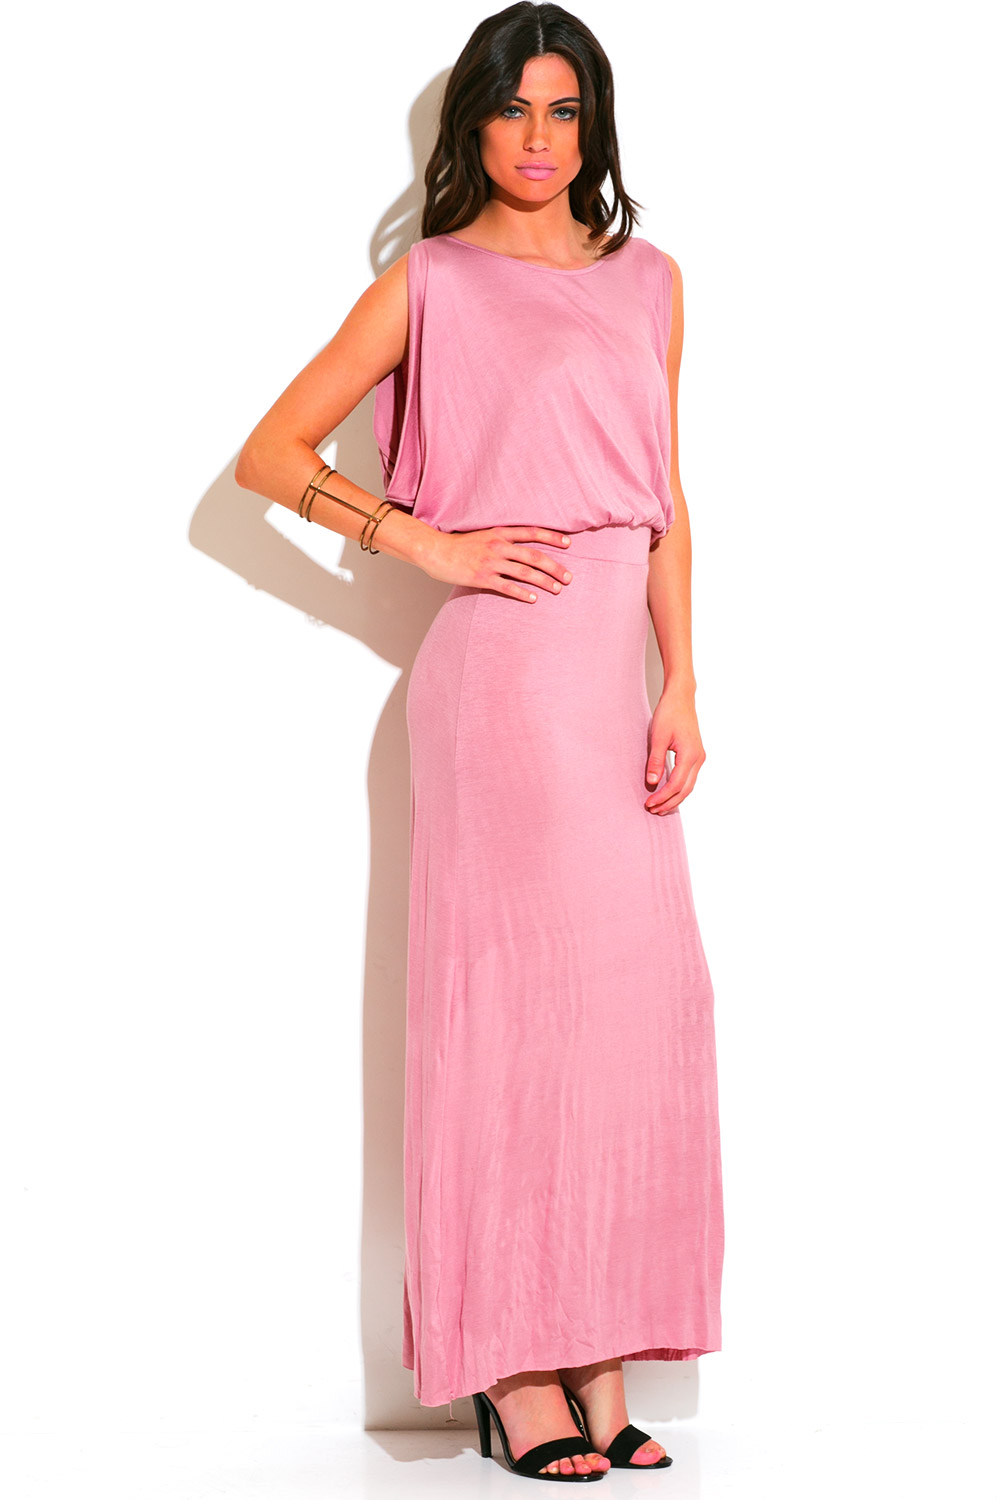 Dusty pink grecian draped backless drop waist evening maxi dress